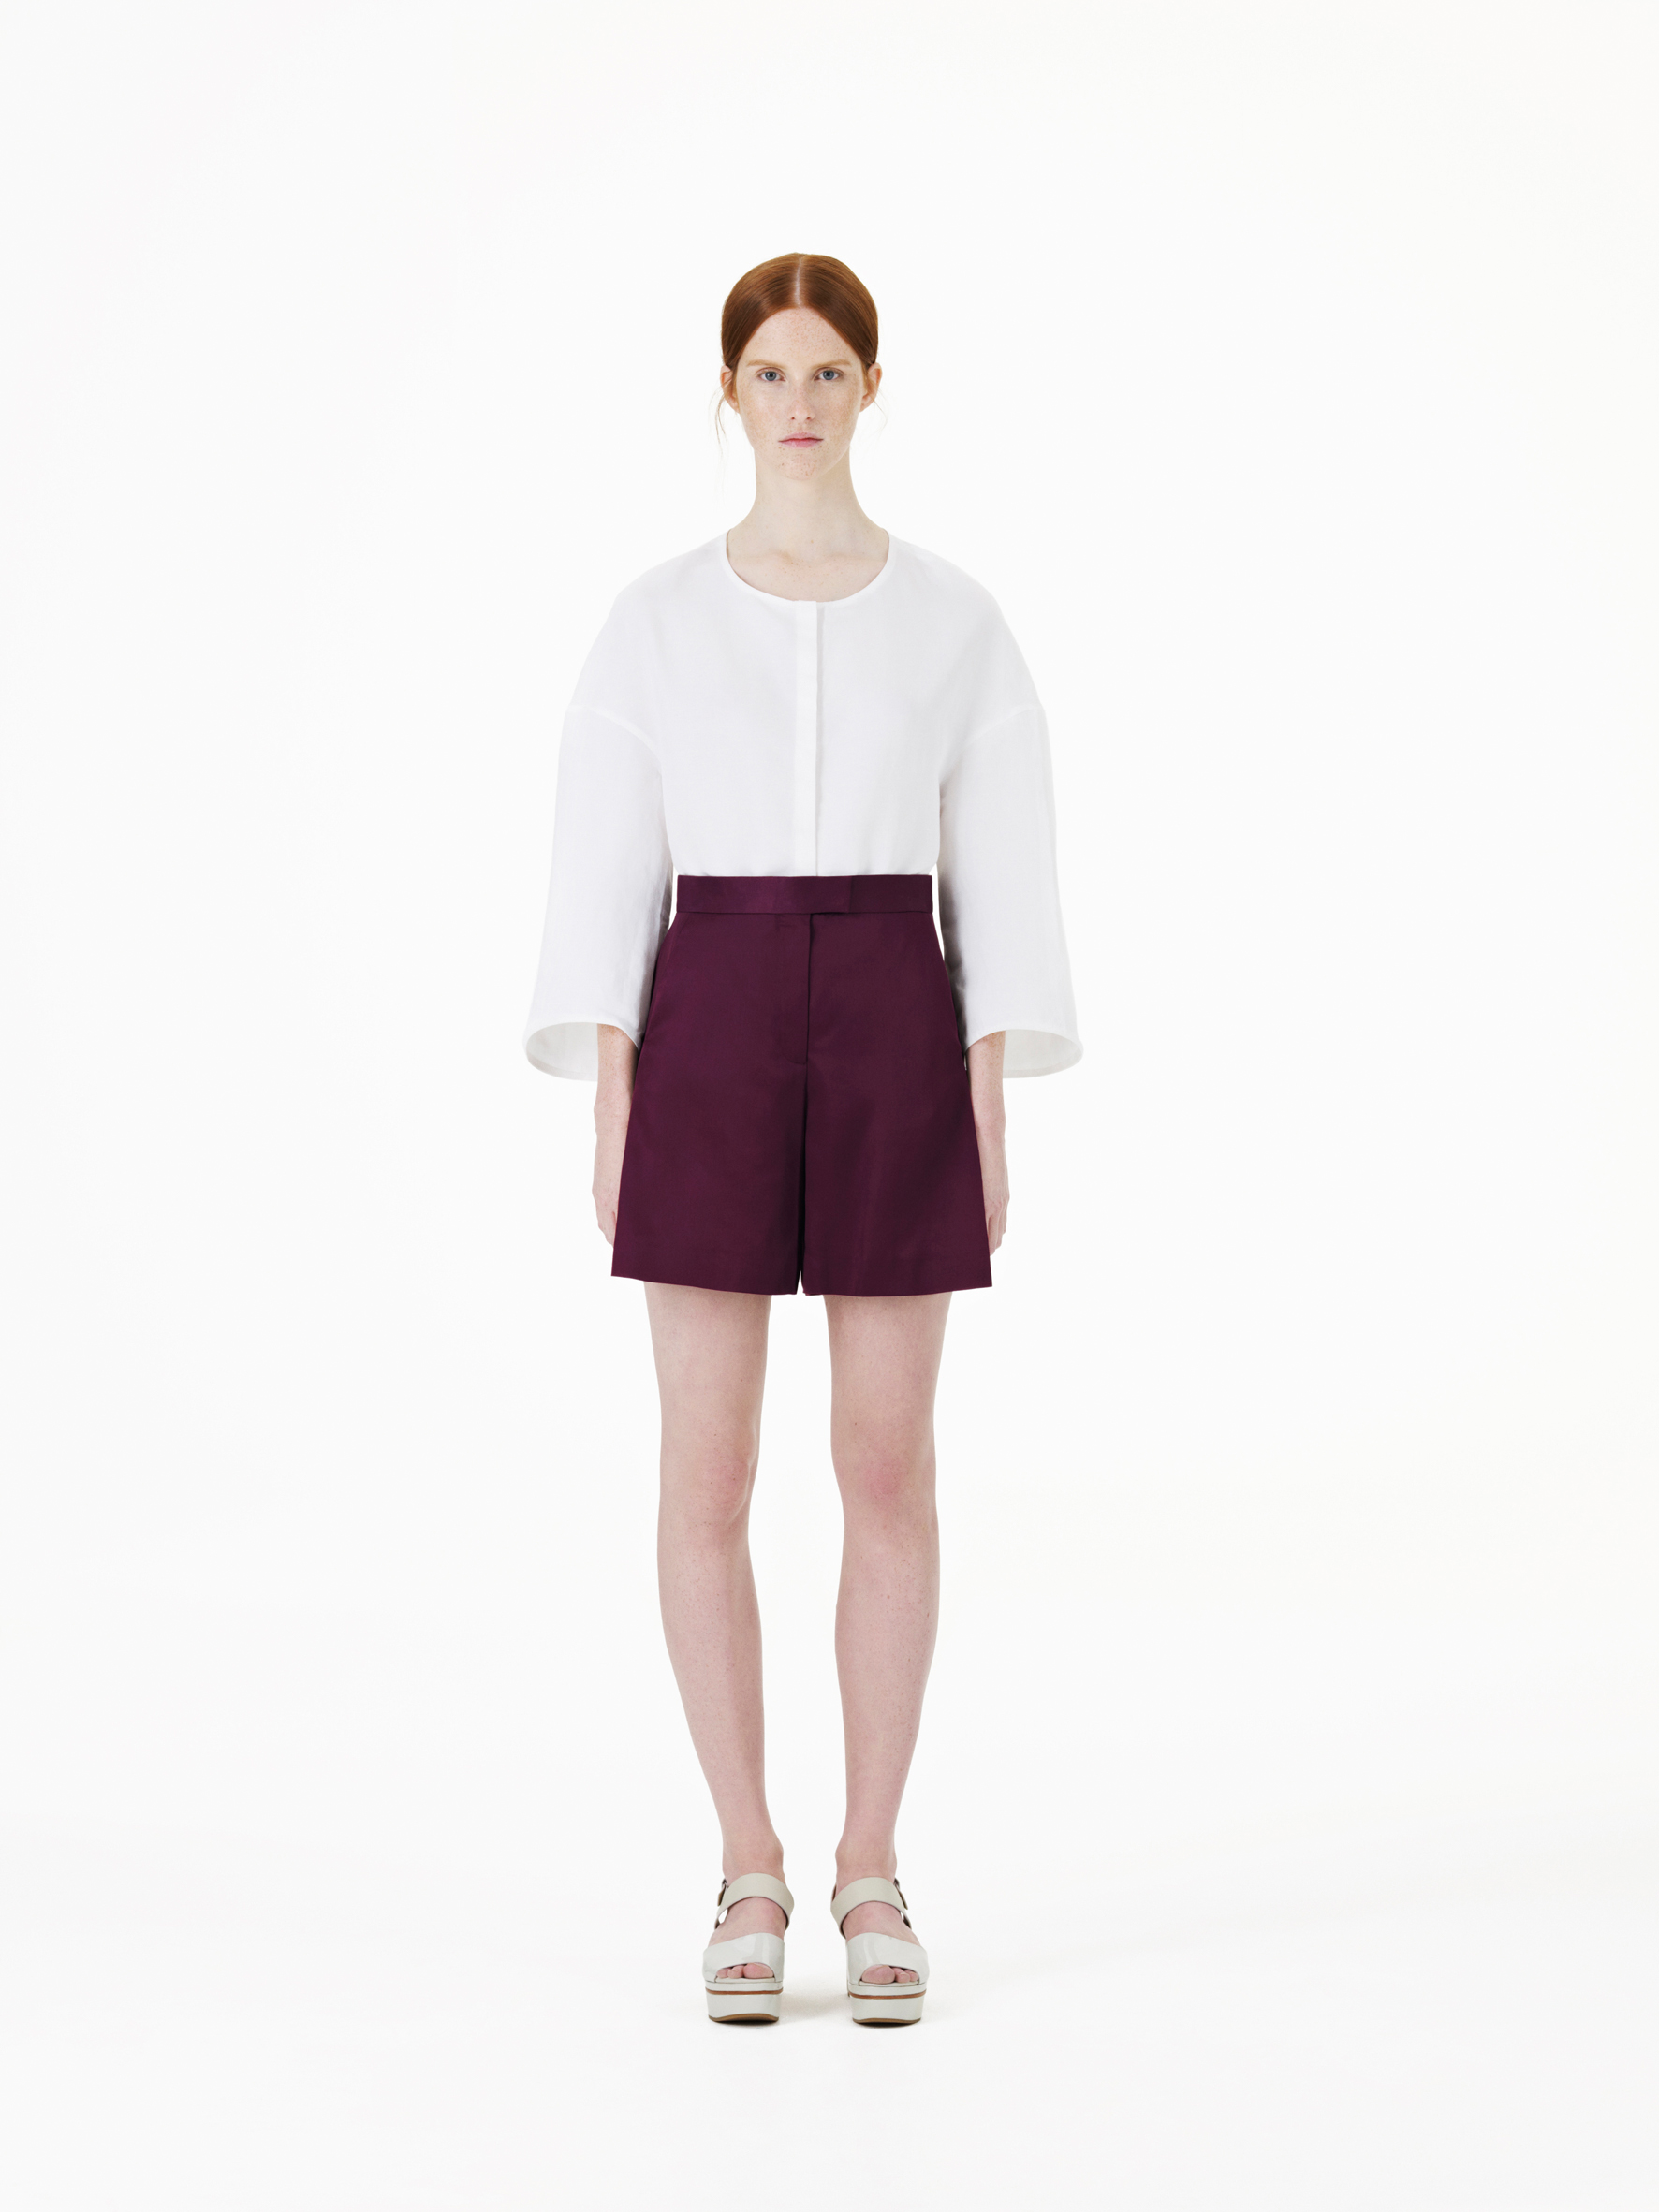 COS_SS14_WOMENS_03_lowres